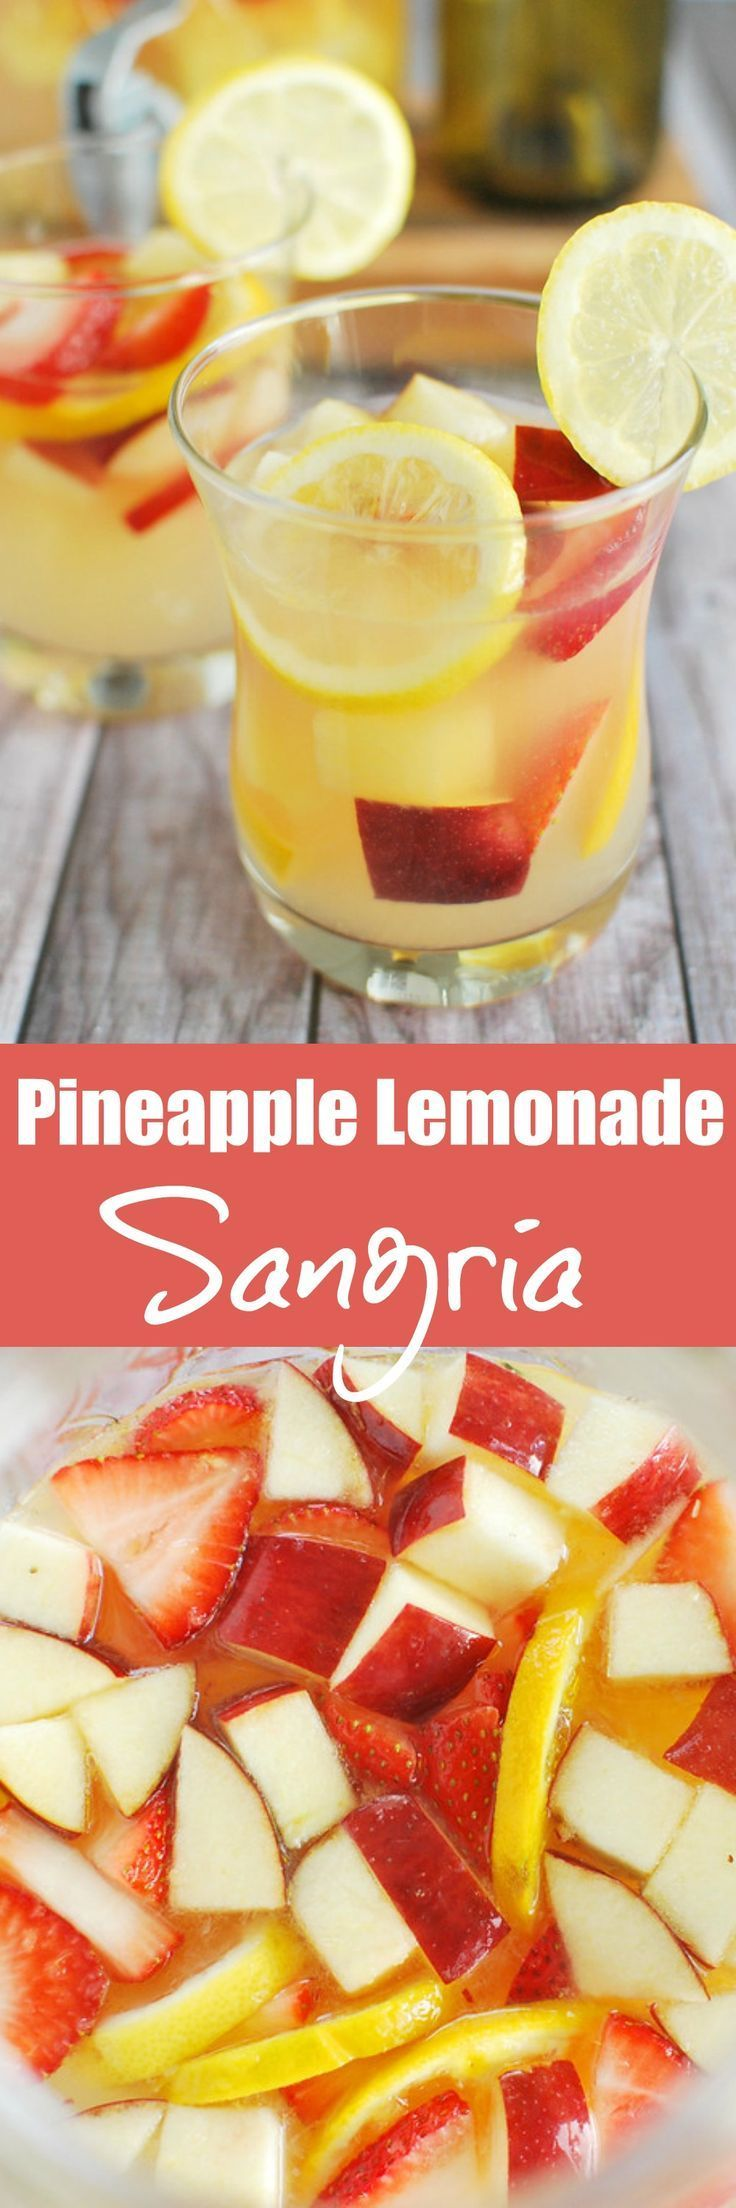 Pineapple Lemonade Sangria - the ultimate summer drink recipe! White wine, lemonade, and rum with tons of fresh fruit mixed in. It can be made ahead so it is perfect if you are prepping for a party! #pineapplelemonade